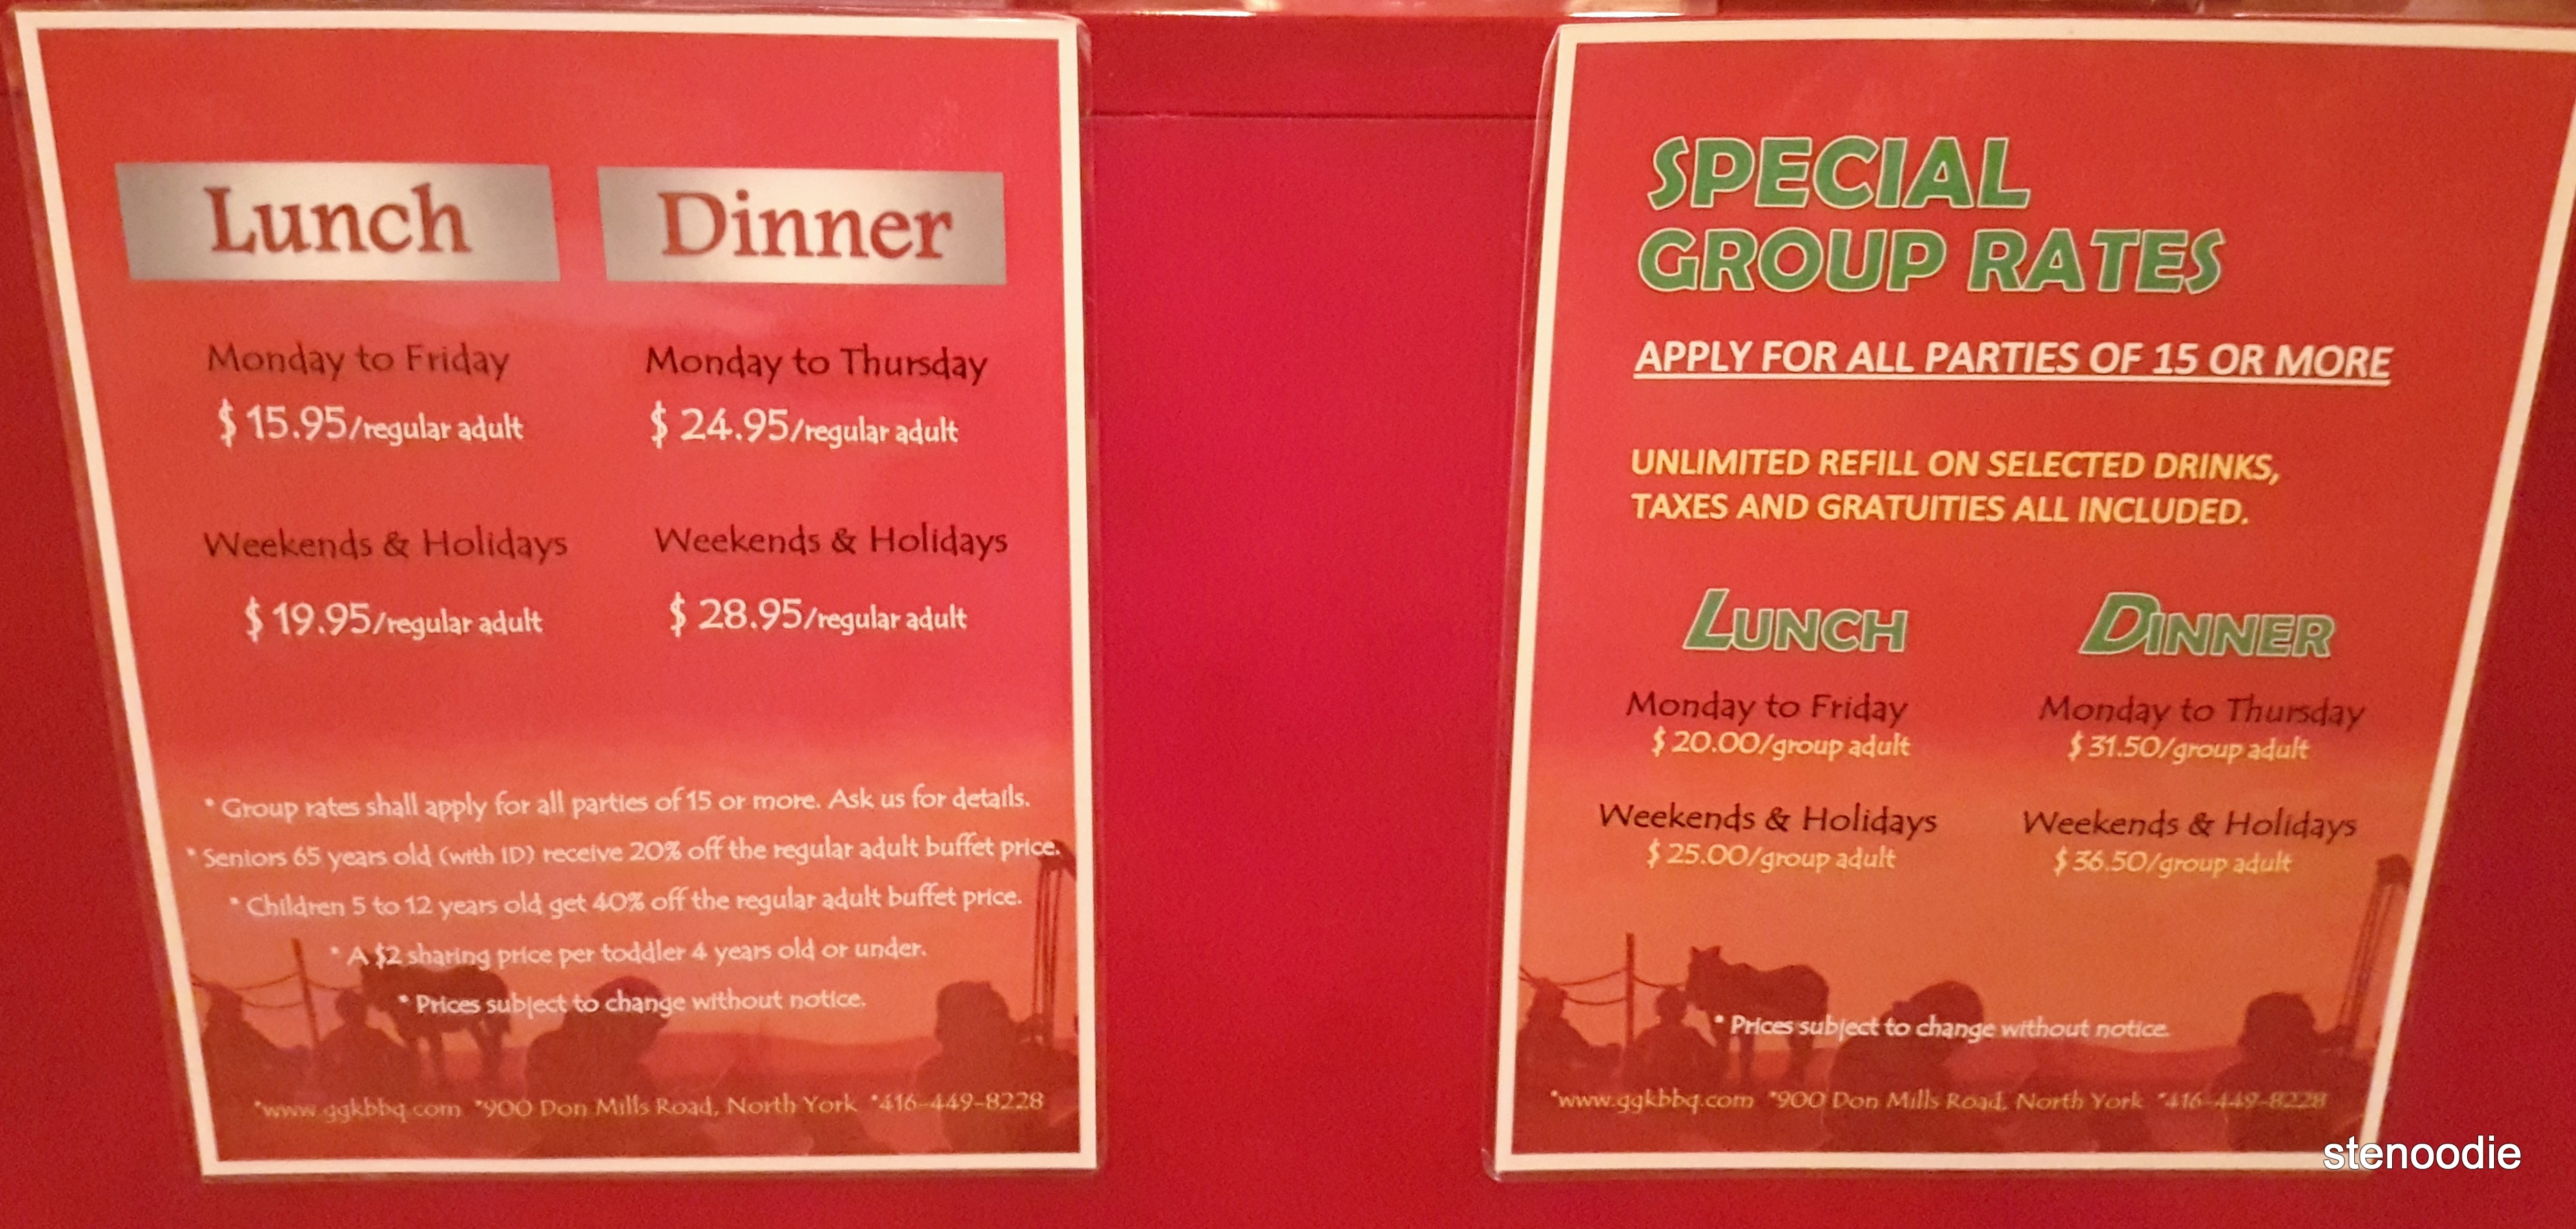 Genghis Khan Mongolian Grill buffet lunch and dinner prices